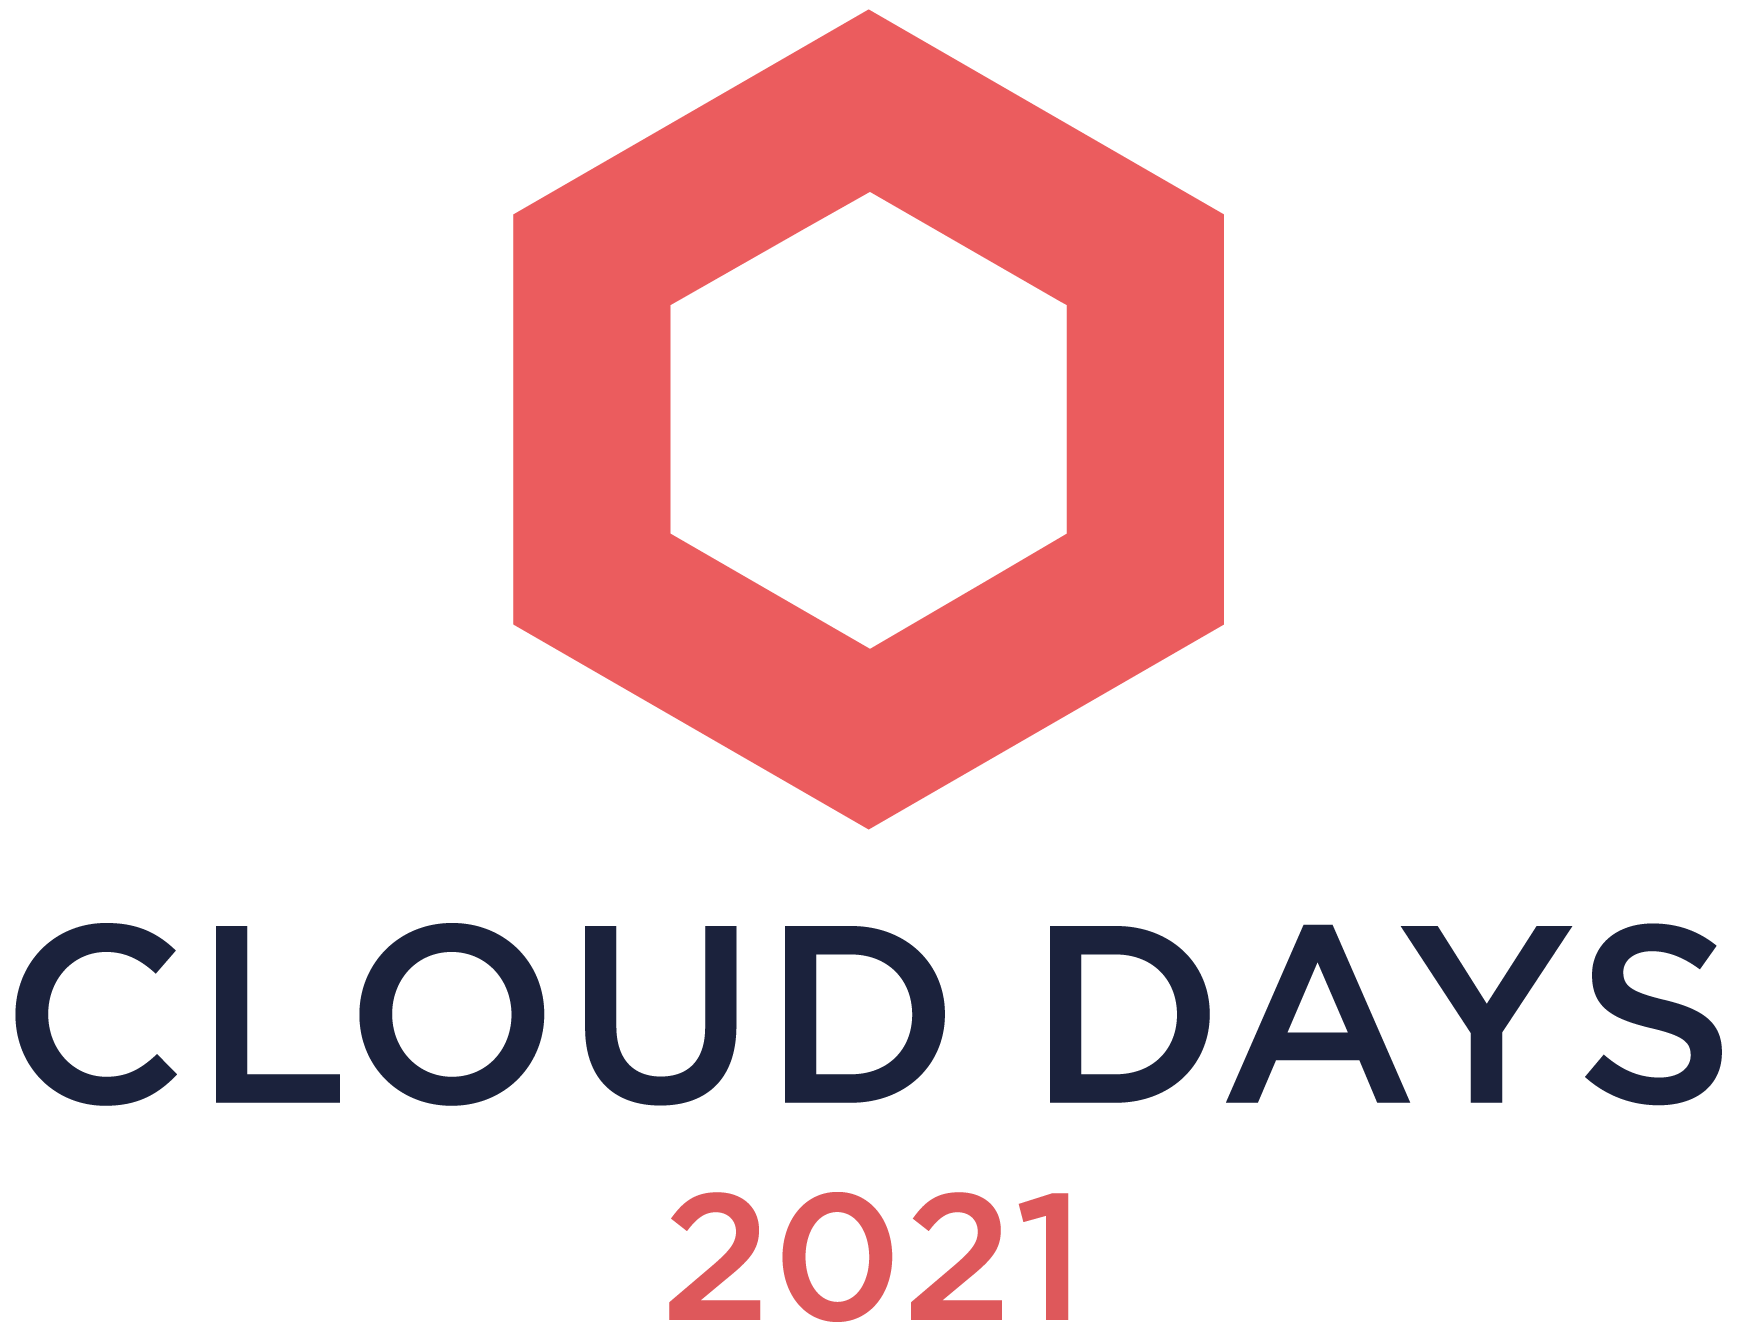 CLOUD DAYS 2021 - 3DS OUTSCALE